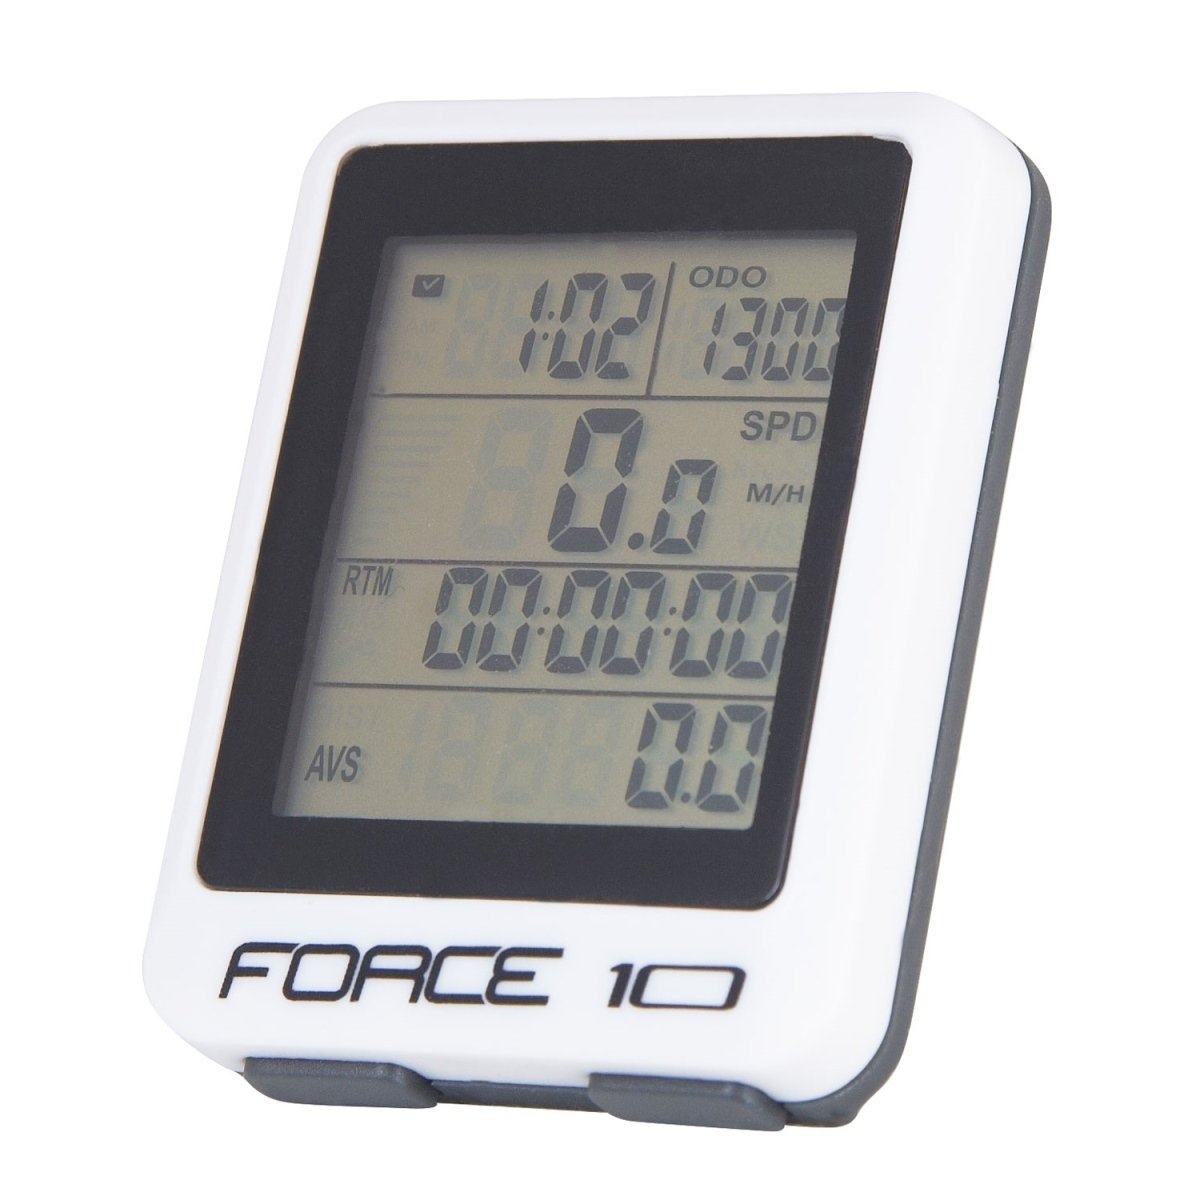 Force cykelcomputer 10 funktioner hvid | Cycle computers